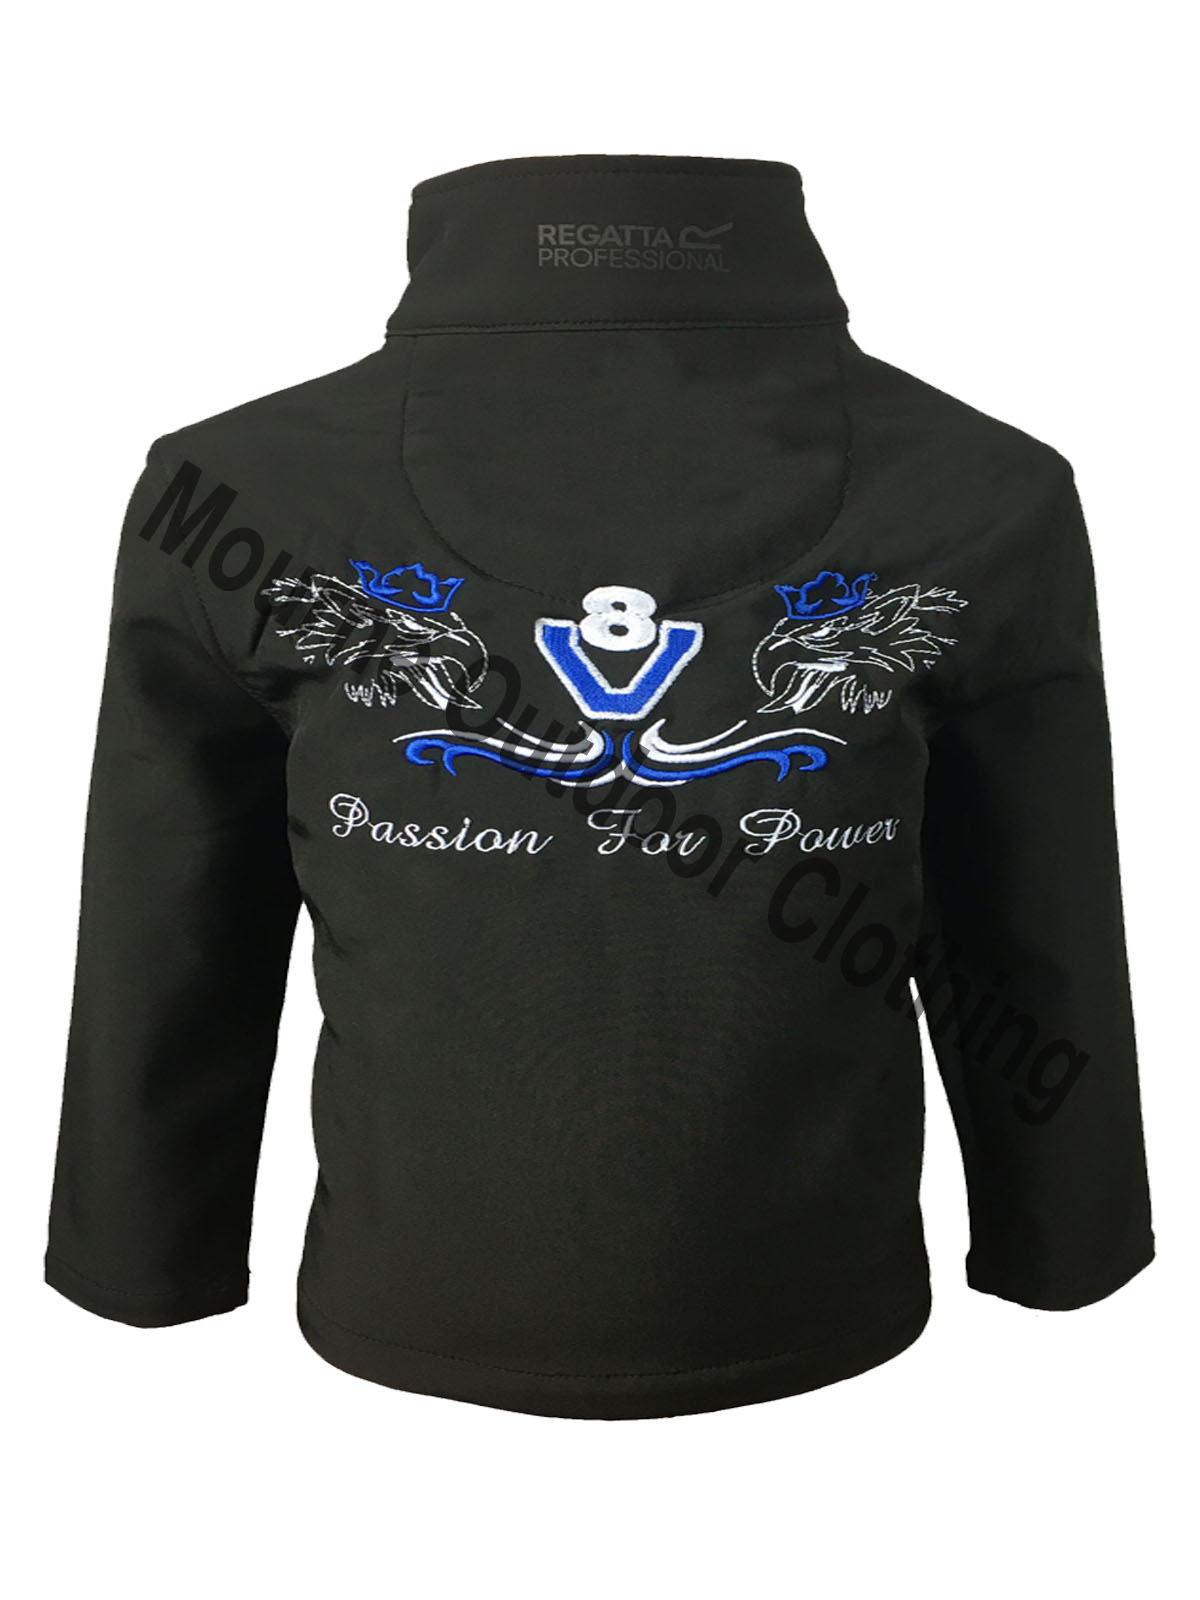 Kids Regatta King Of The Road V8 Softshell Jacket Black